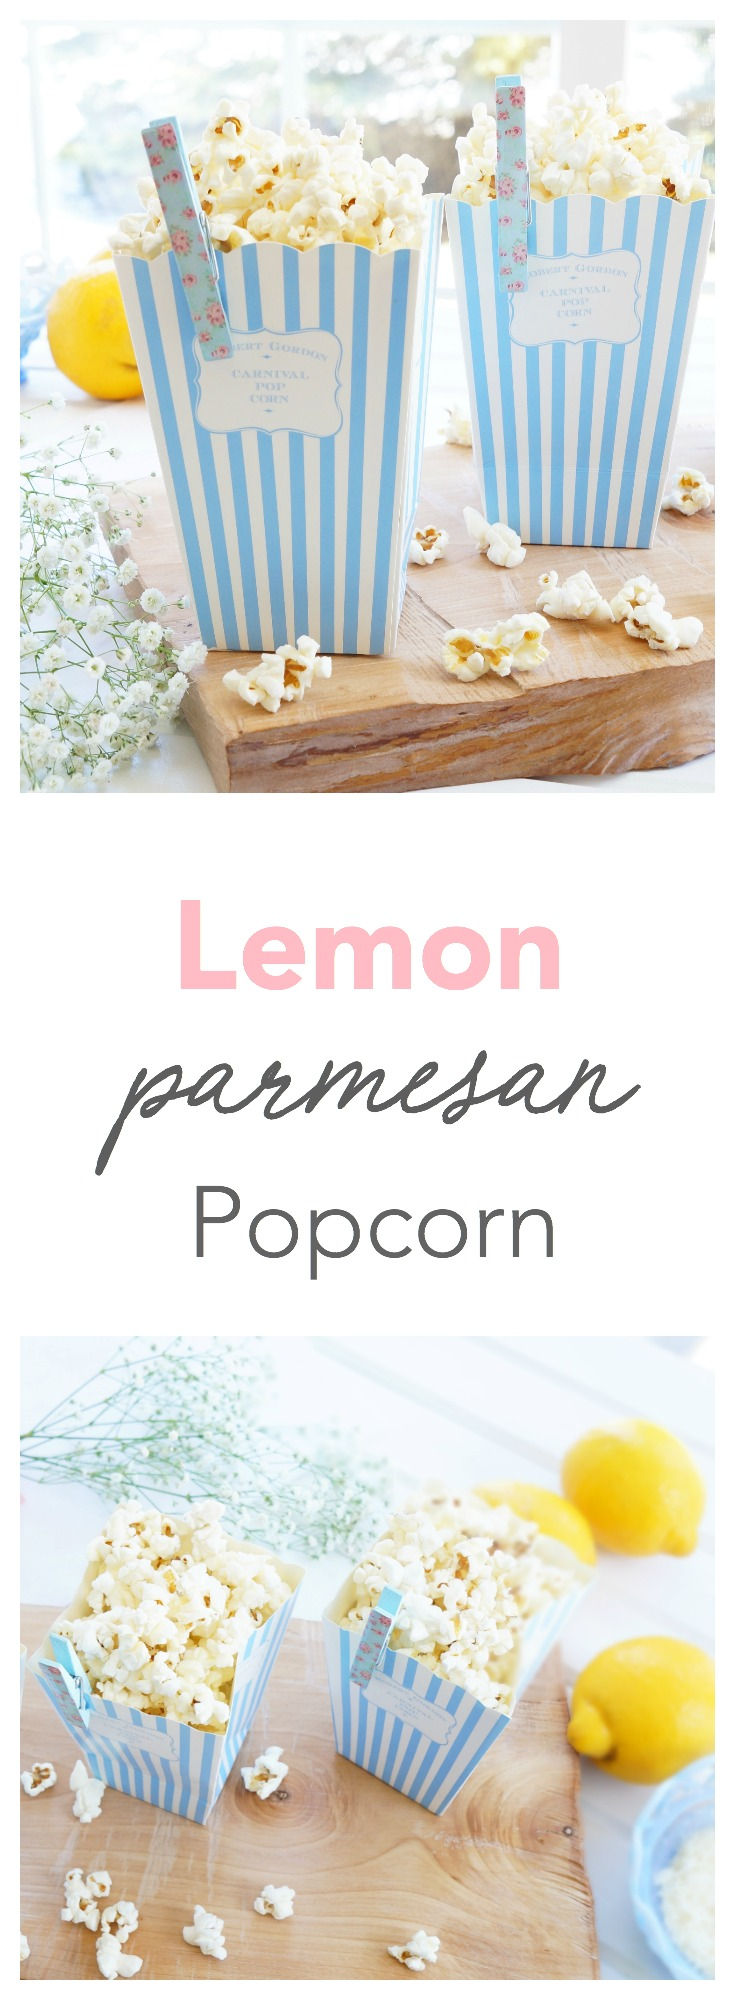 This crunchy and filling popcorn is topped up with a sprinkle of lemon zest, parmesan cheese and black pepper. A great healthy option when you're craving some crunch! Gluten-free, vegetarian and full of fibre and antioxidants!